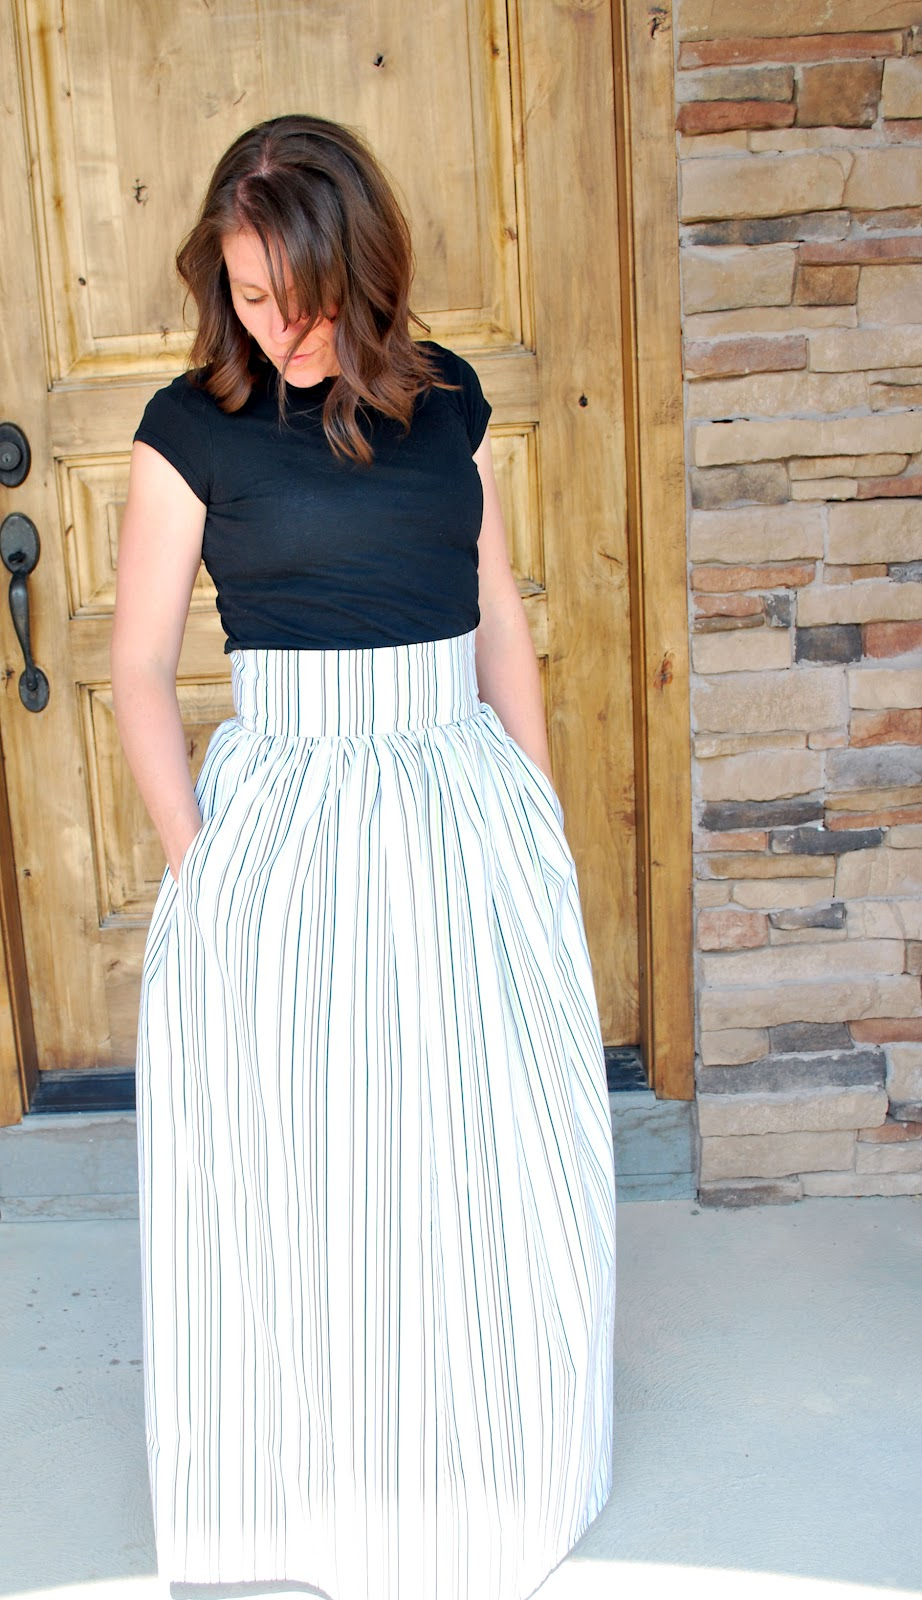 high waisted skirt pattern 2014 2015 fashion trends 2016